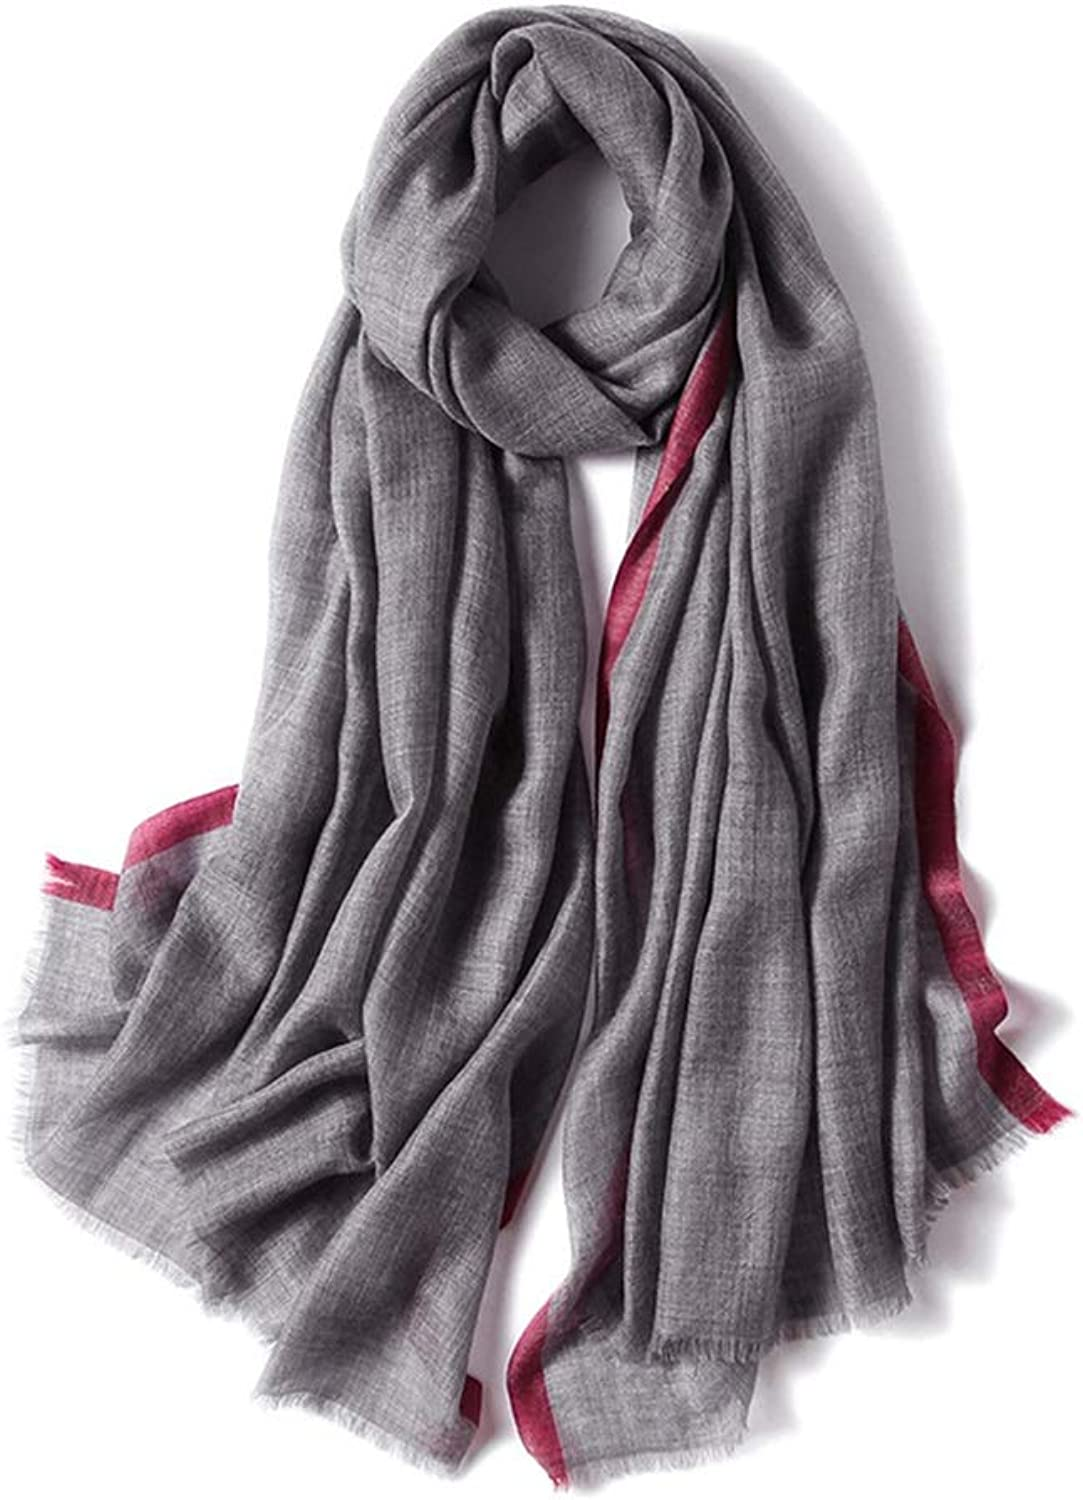 Multicolor Women's Autumn and Winter Scarf Cold and Soft Shawl Cardigans Sweater Coat (color   C13)